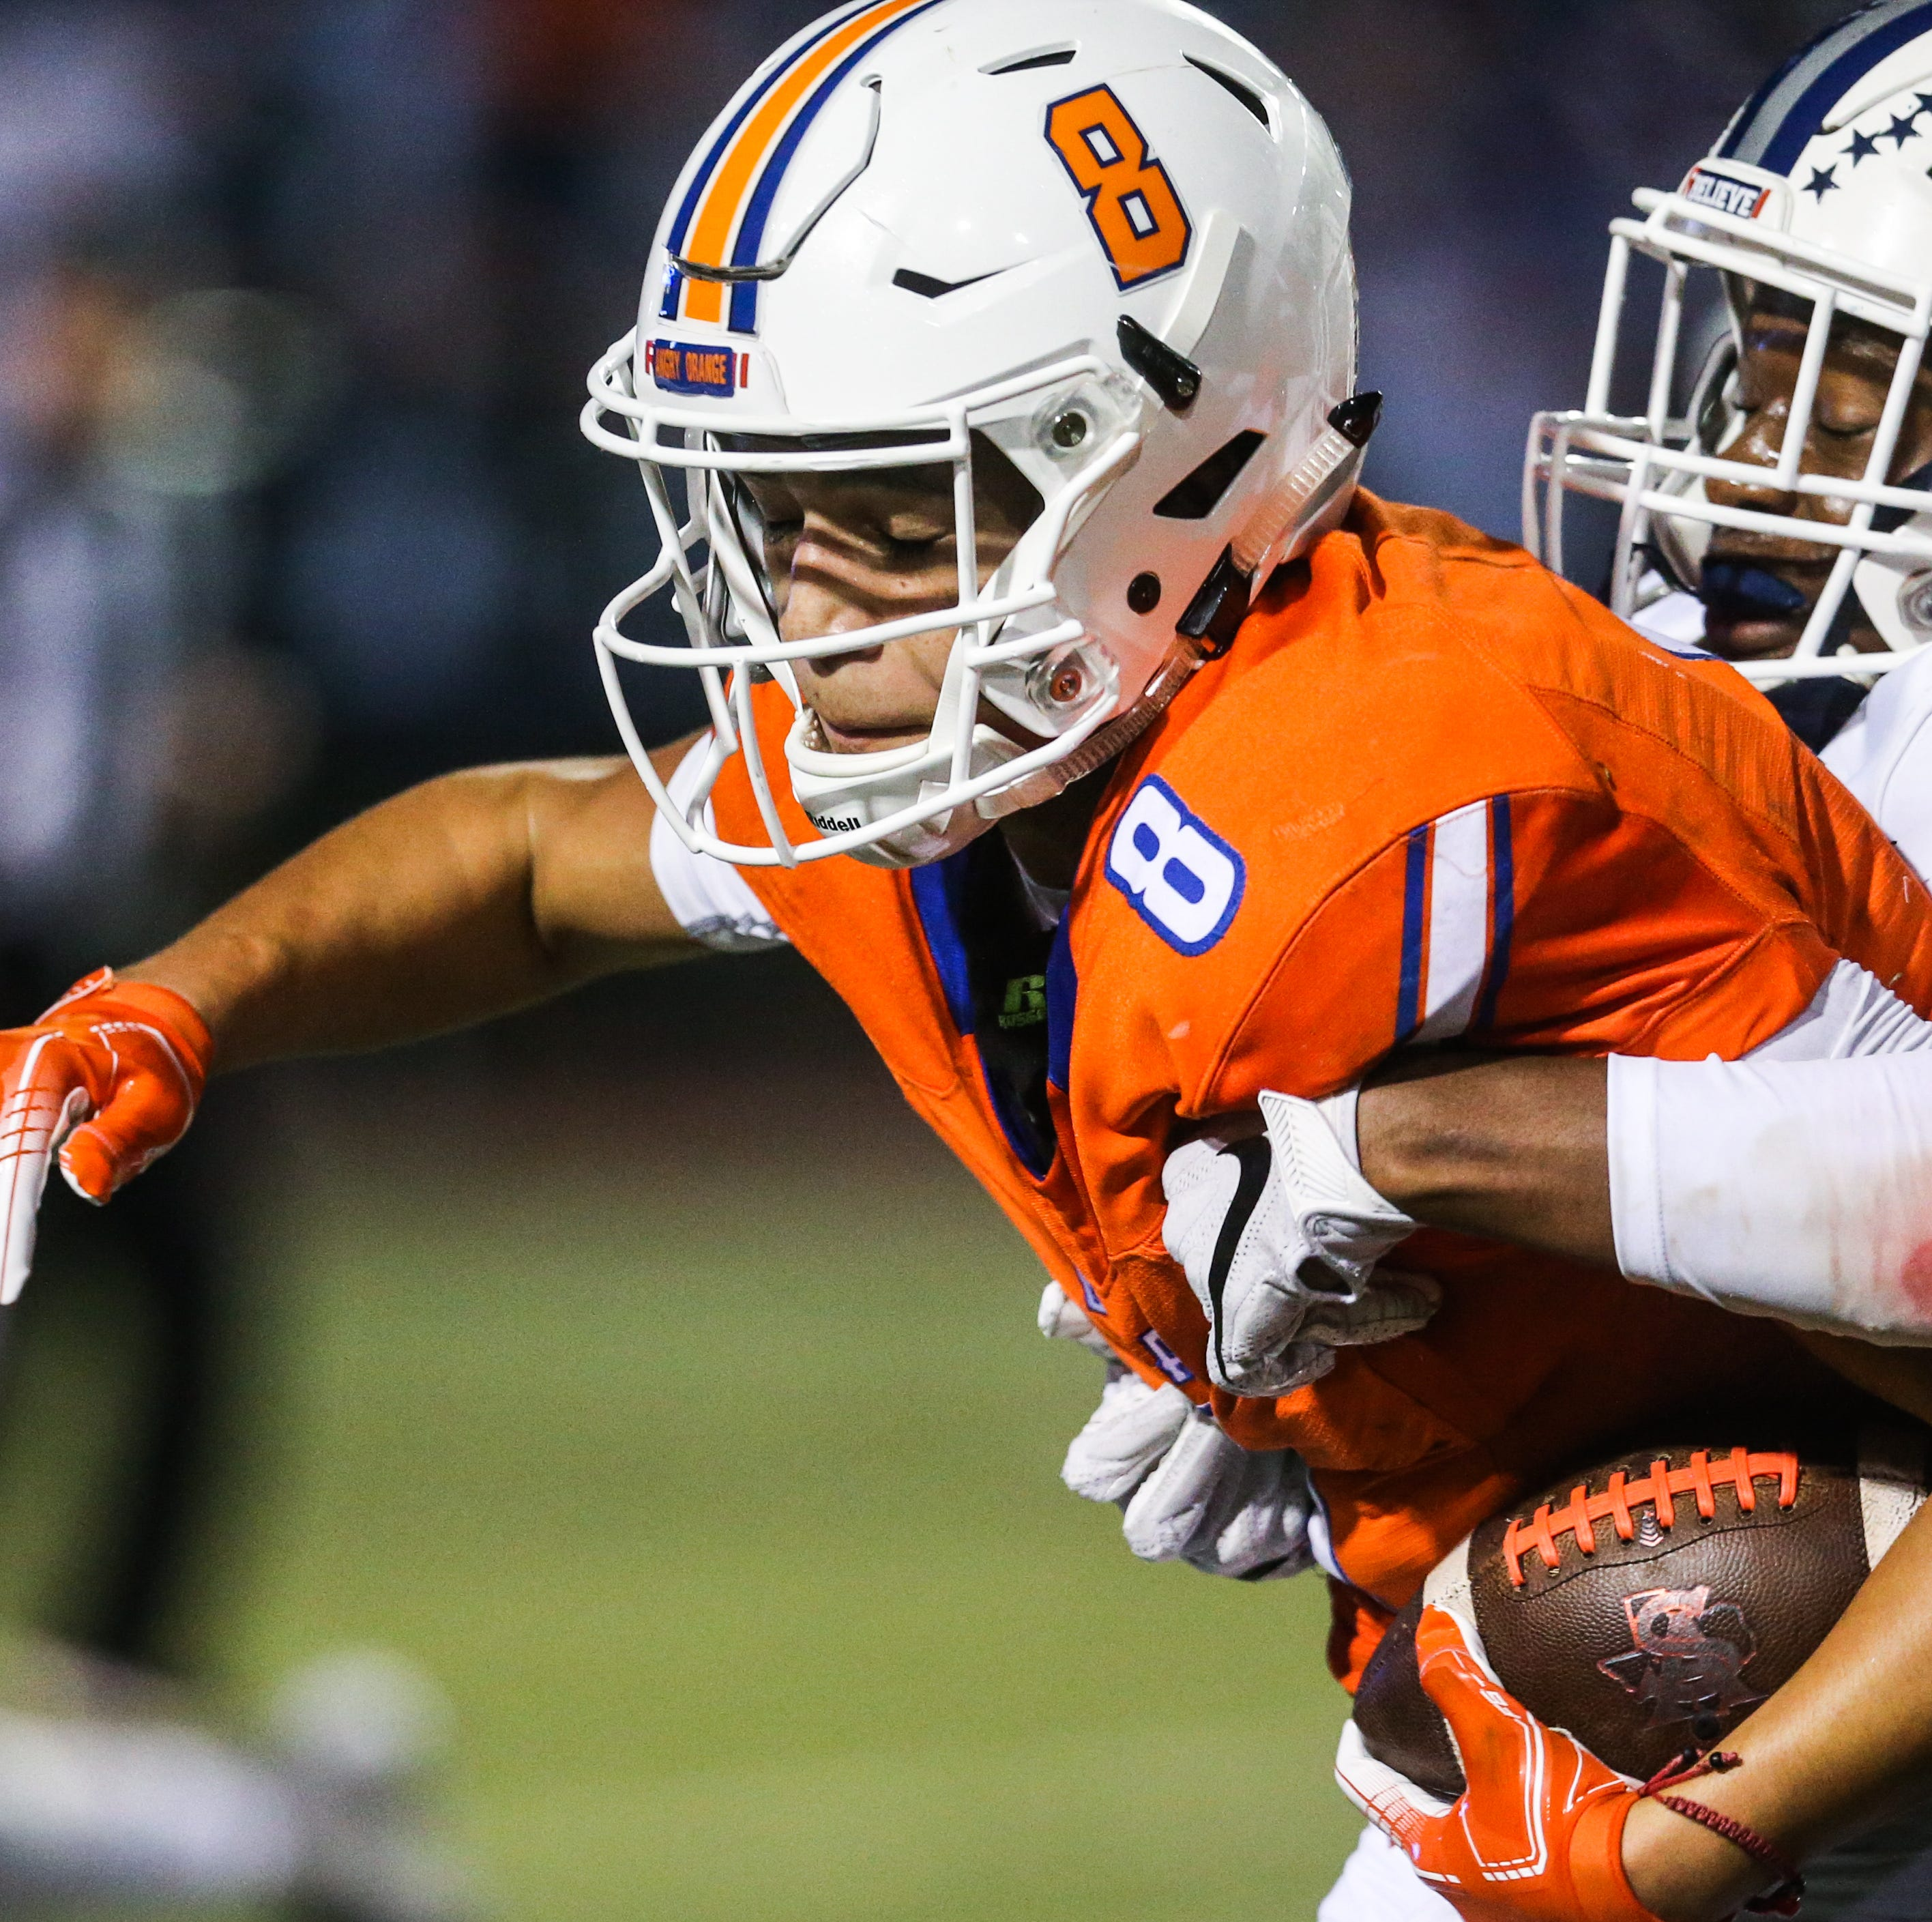 San Angelo Central QB runs for 338 yards in win